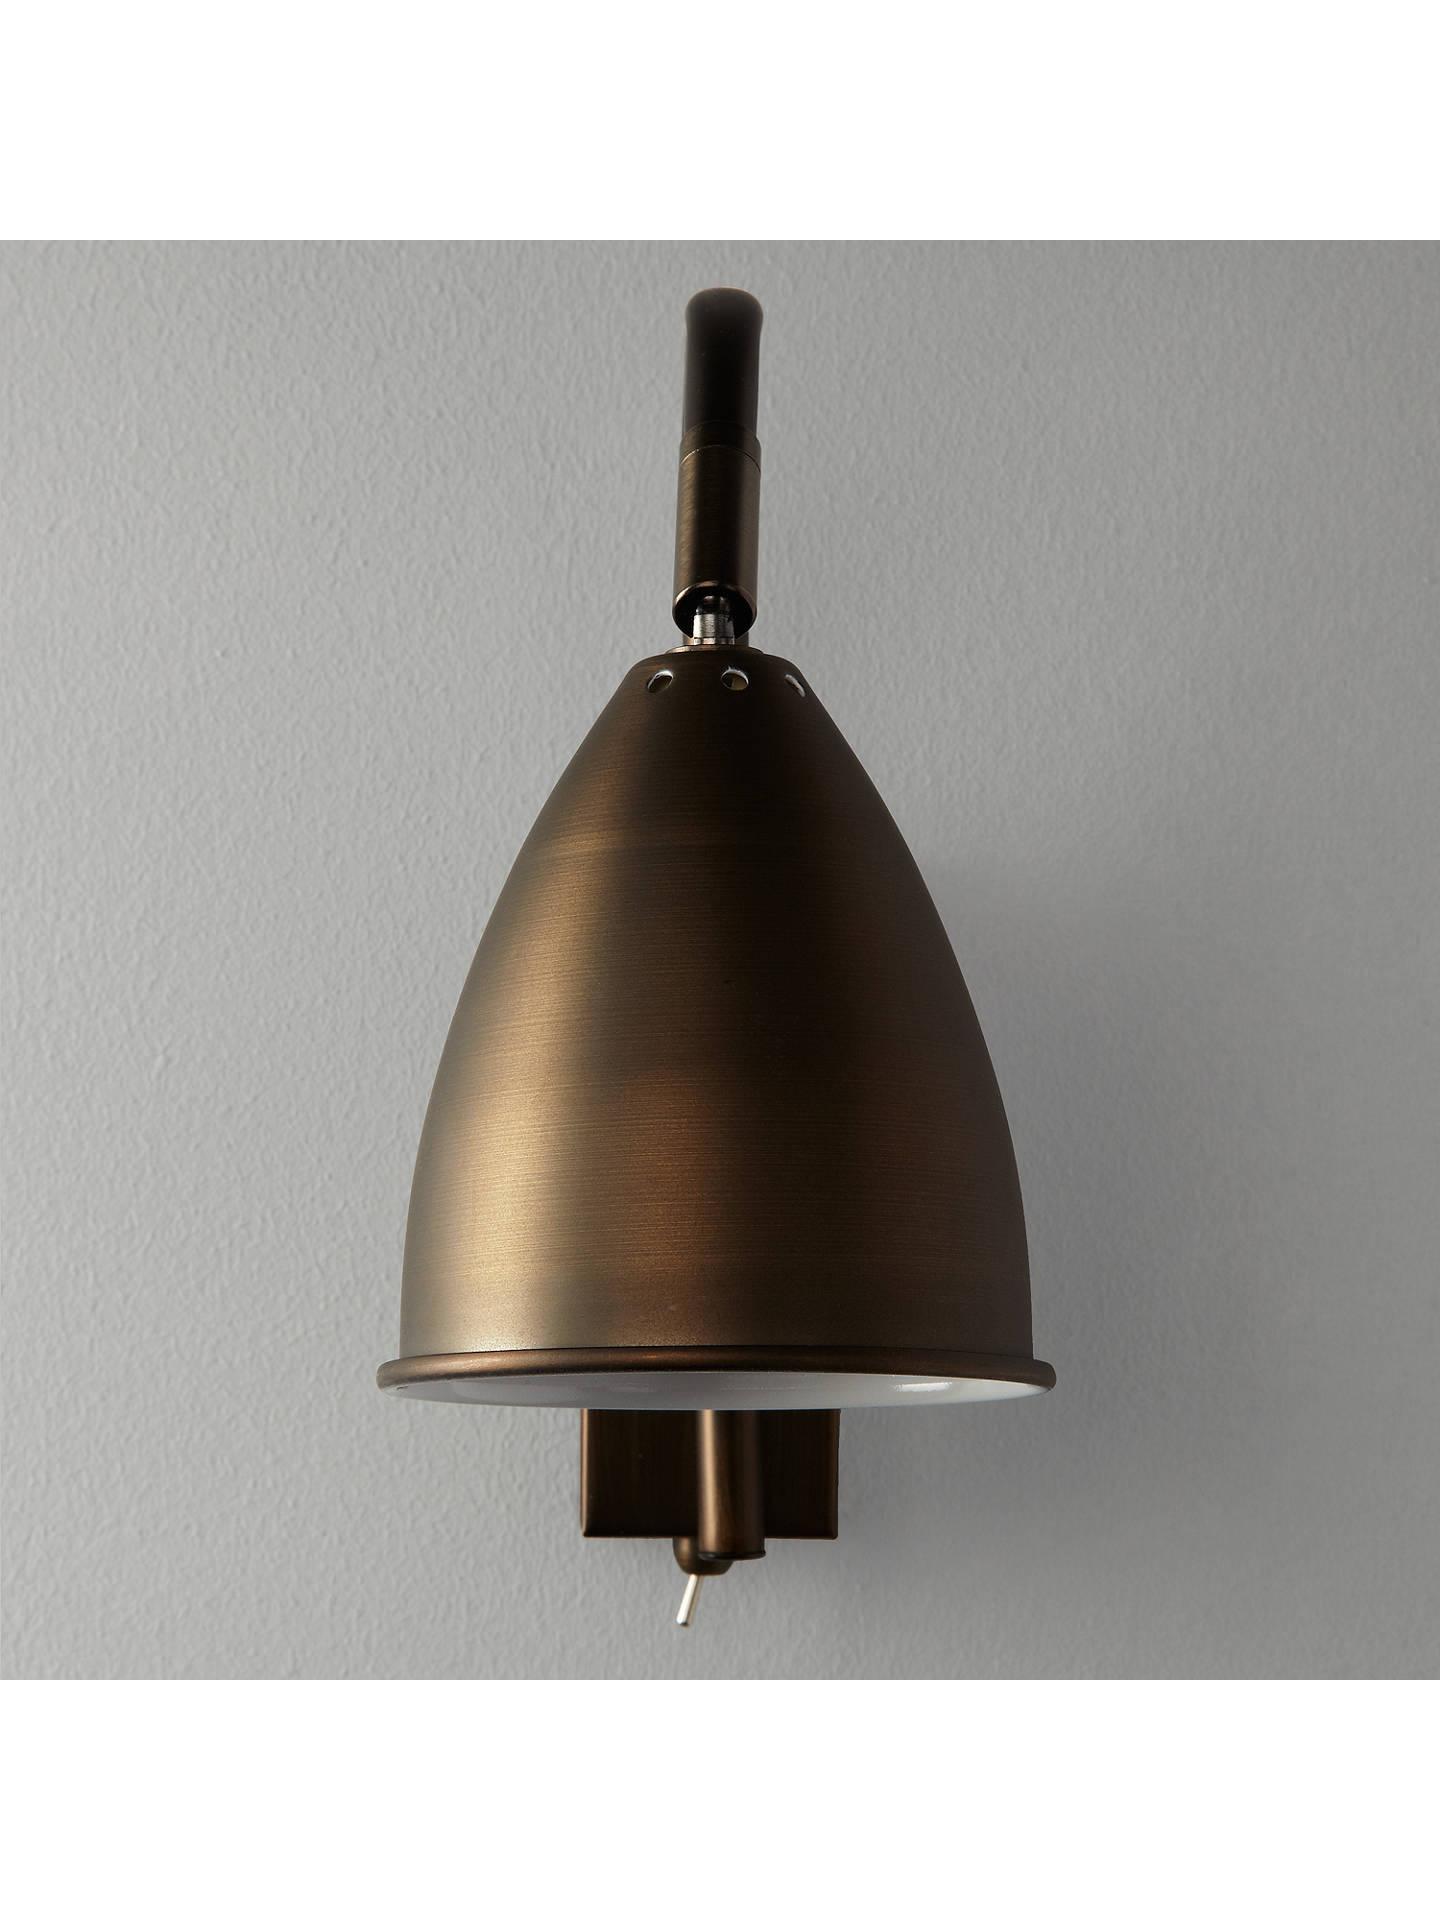 BuyJohn Lewis & Partners Chelsea Adjustable Wall Light, Bronze Online at johnlewis.com